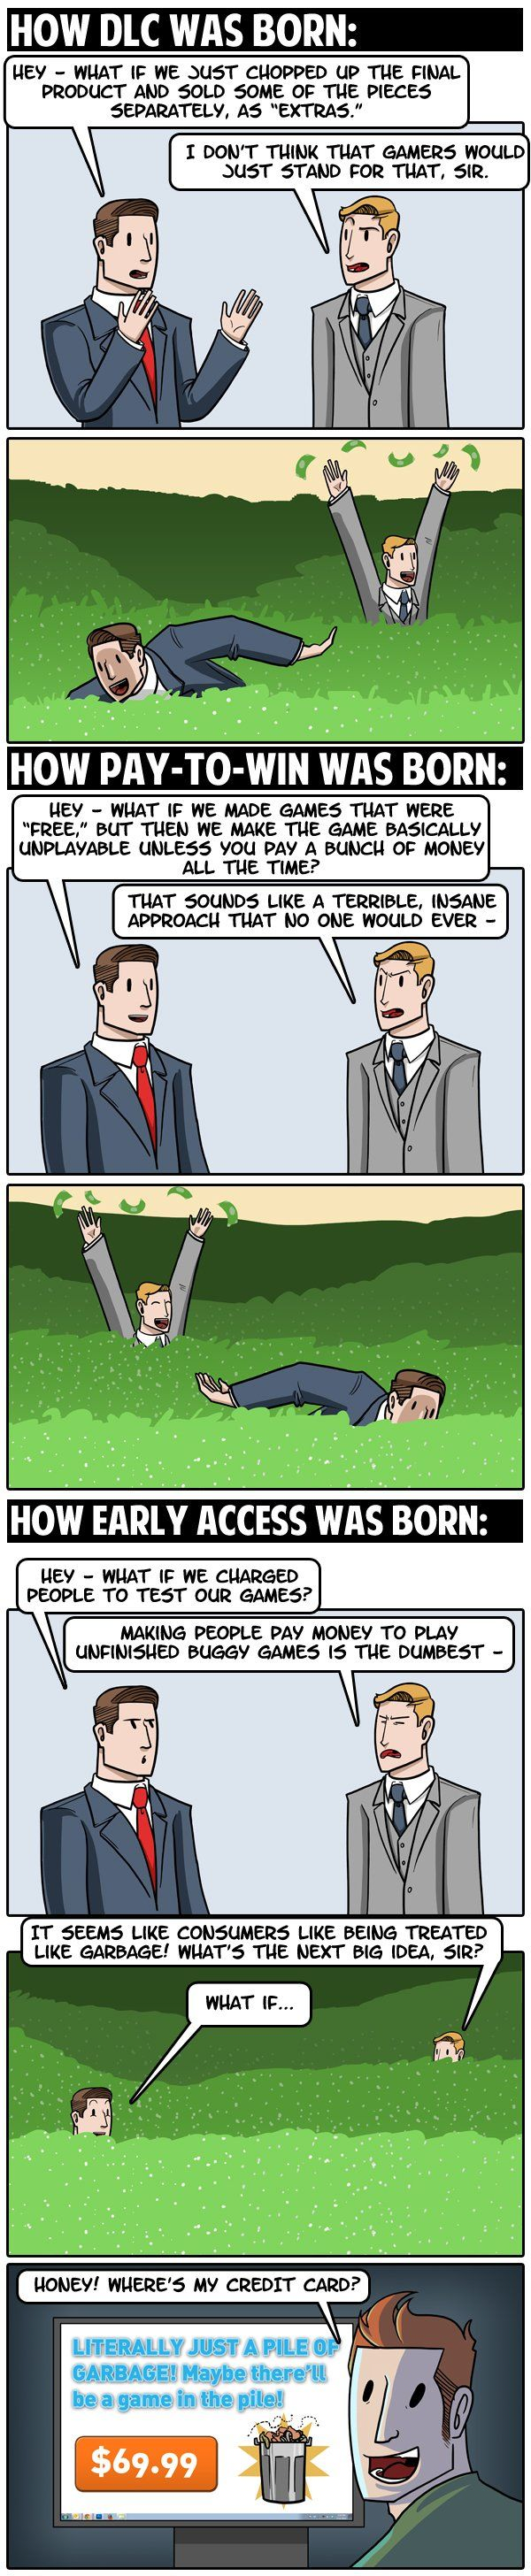 """How Every Awful Video Game Thing Was Born"" #dorkly #geek #videogames"